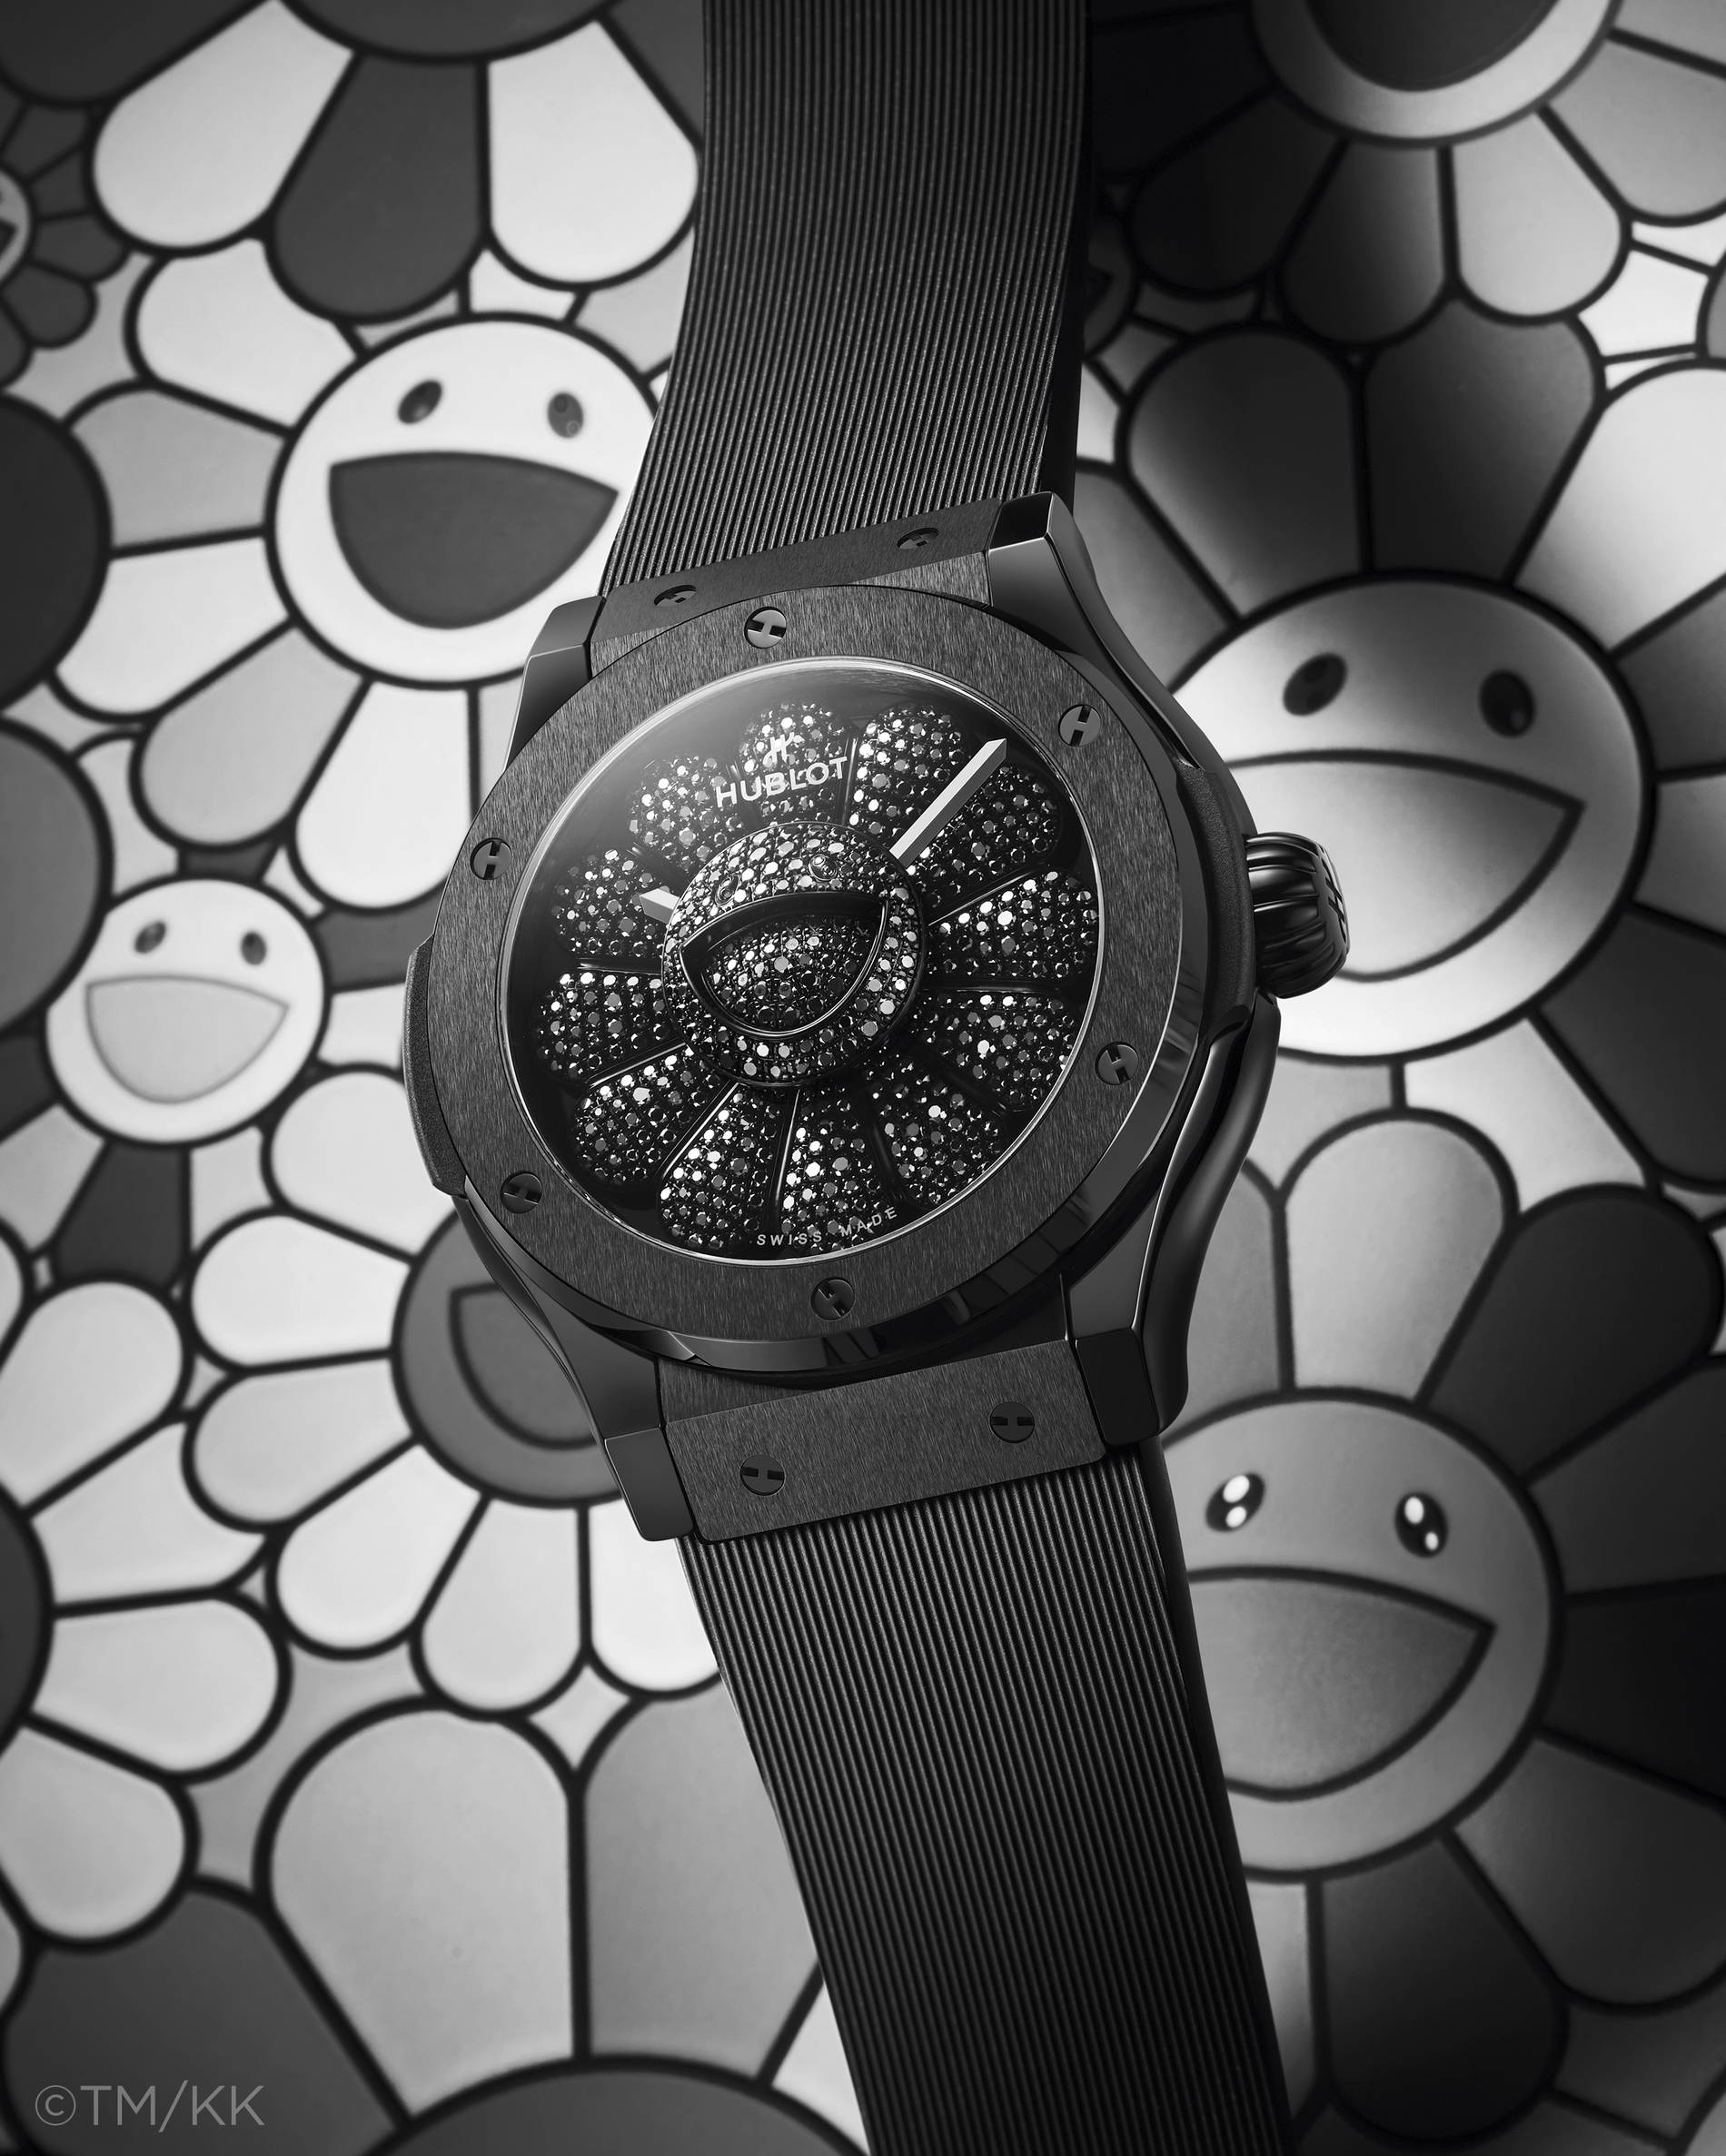 Takashi Murakami and Hublot's Classic Fusion All Black Timepiece